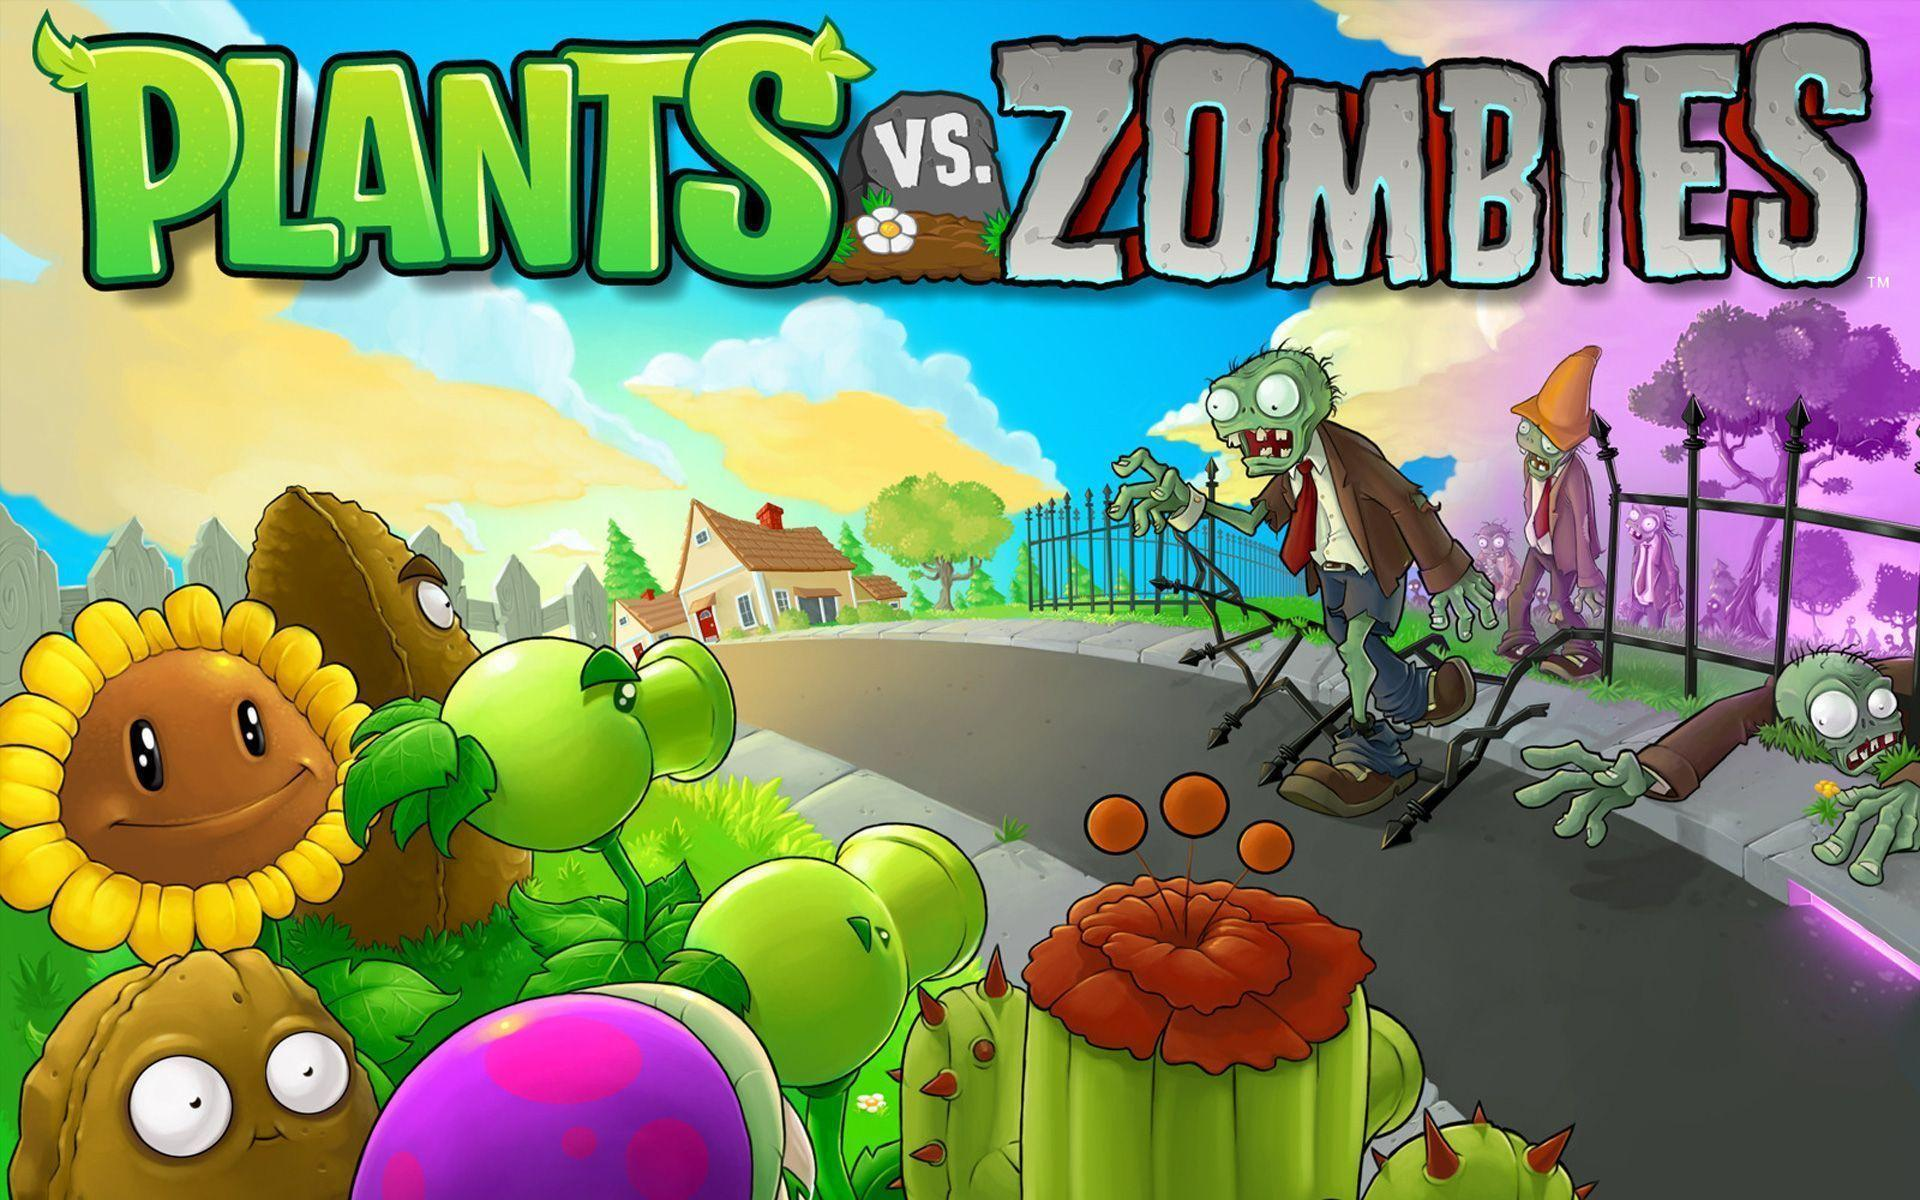 11 Plants Vs. Zombies Wallpapers | Plants Vs. Zombies Backgrounds